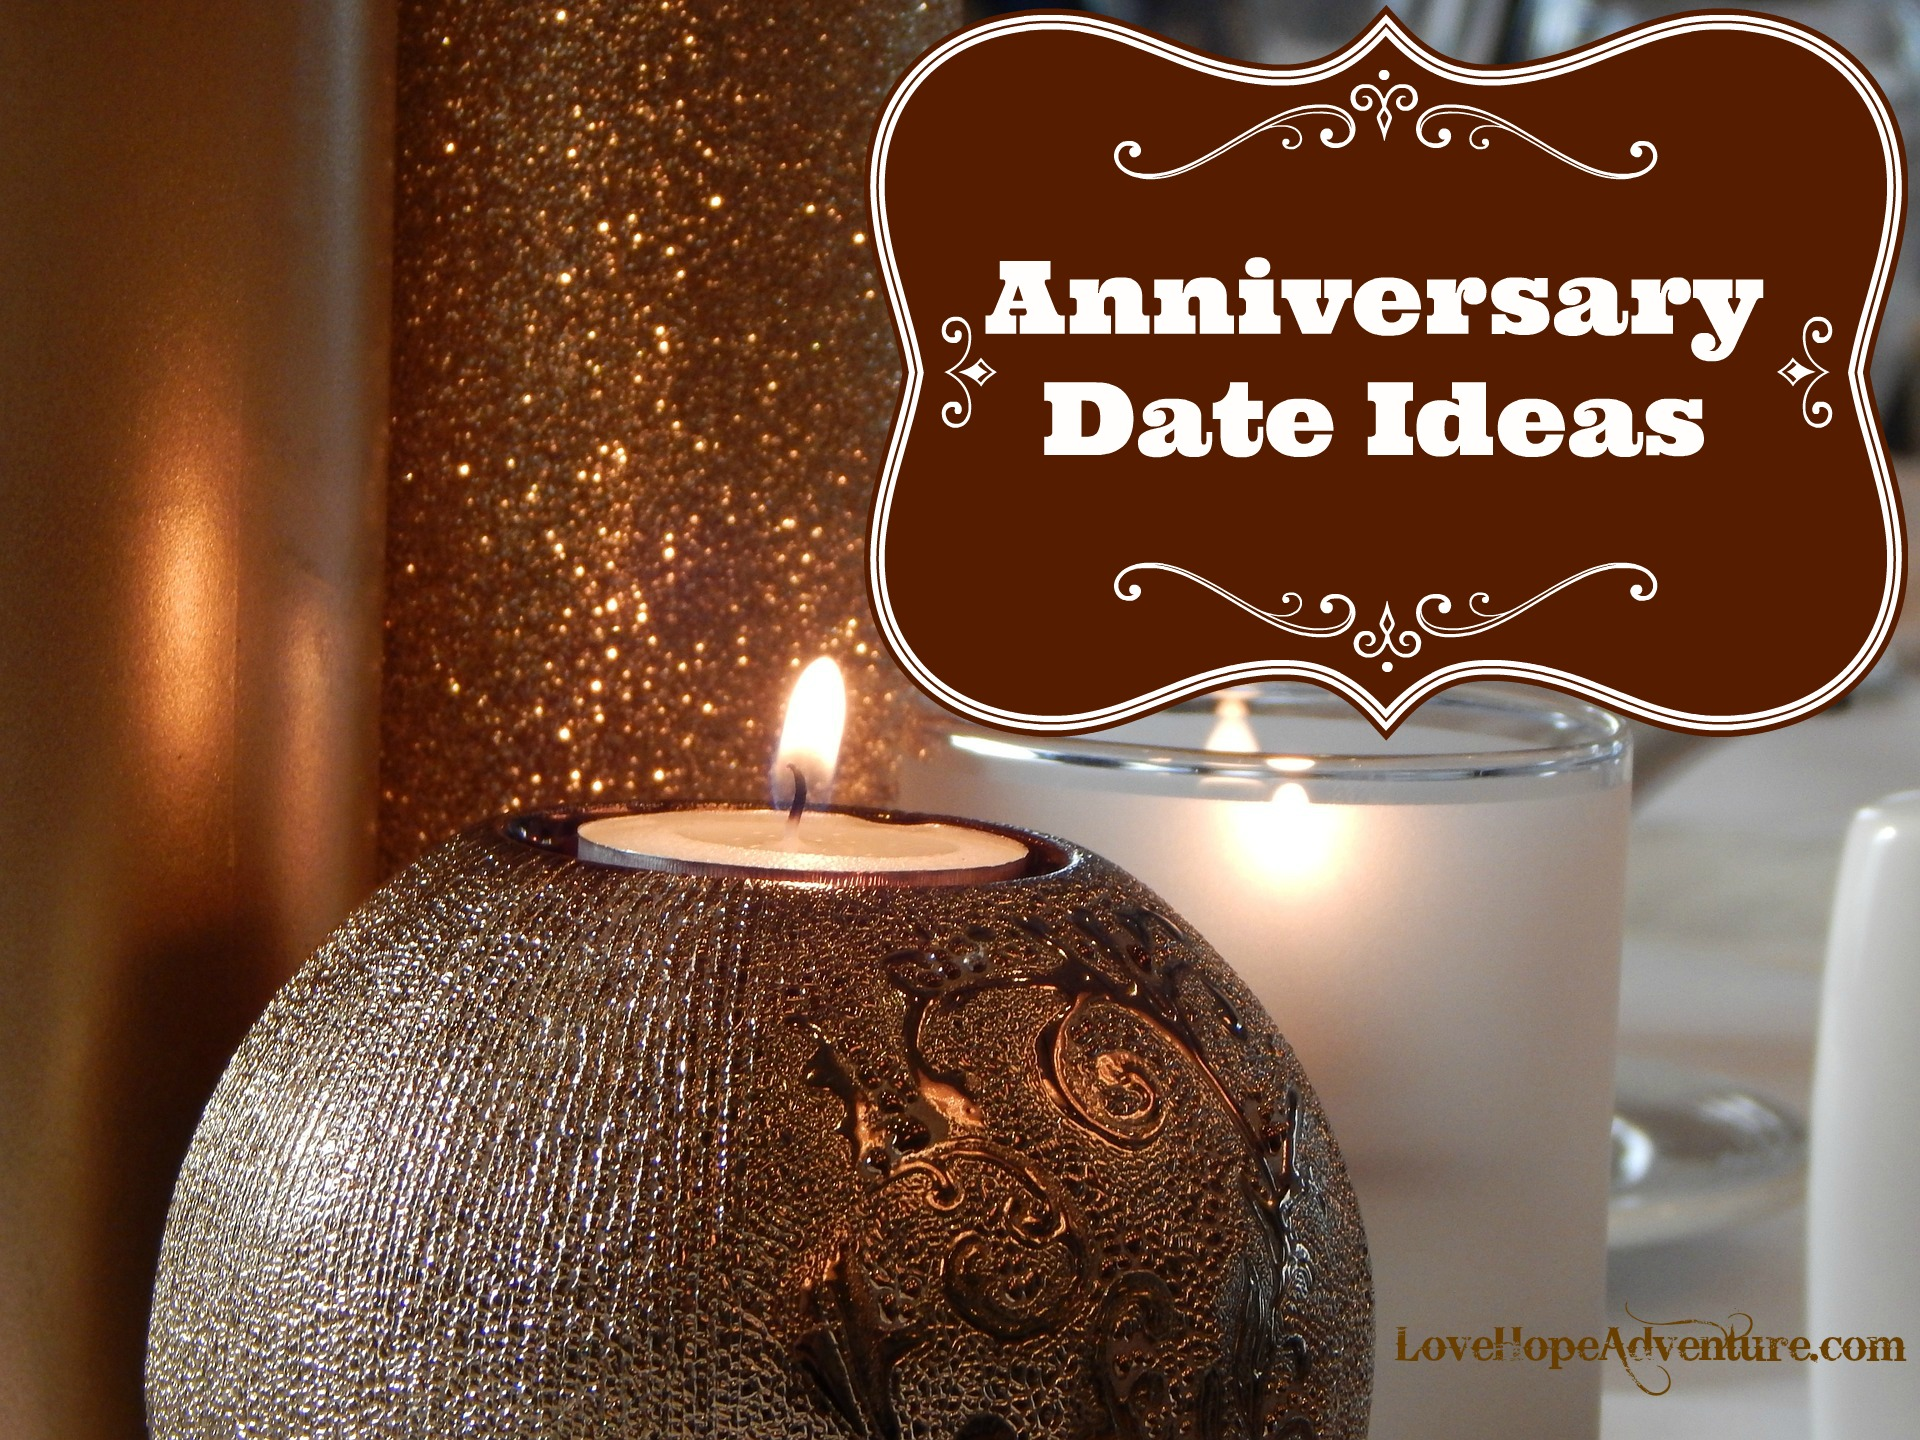 13th Wedding Anniversary Gifts For Men: Anniversary Date Ideas